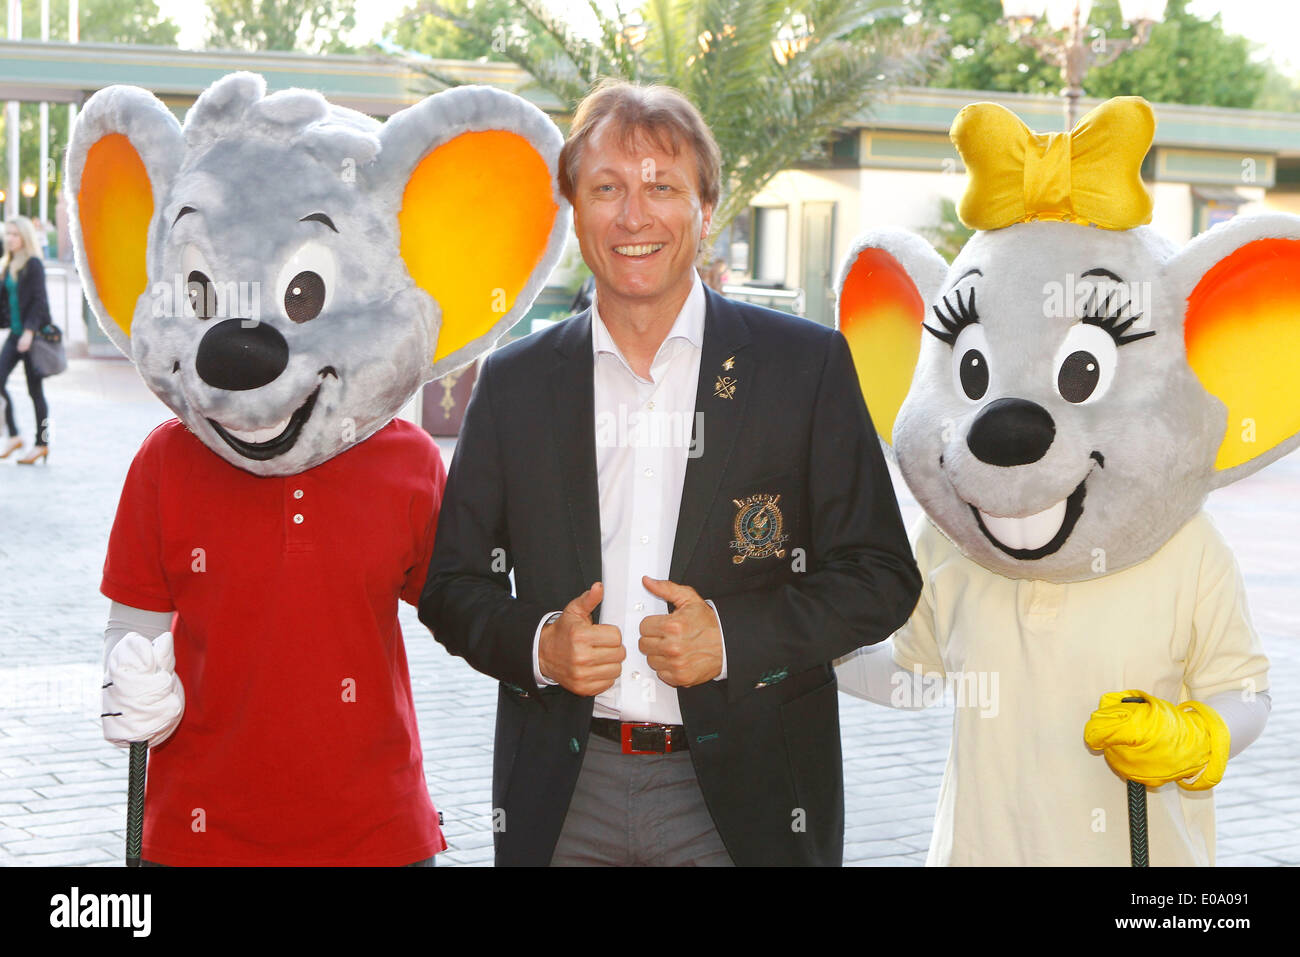 Herbolzheim, Germany - May 5, 2014: Eagles Charity Golf Cup and Gala at Golfclub Breisgau and Europa Park, Rust with ex Skater Norbert Schramm Credit:  dpa picture alliance/Alamy Live News - Stock Image